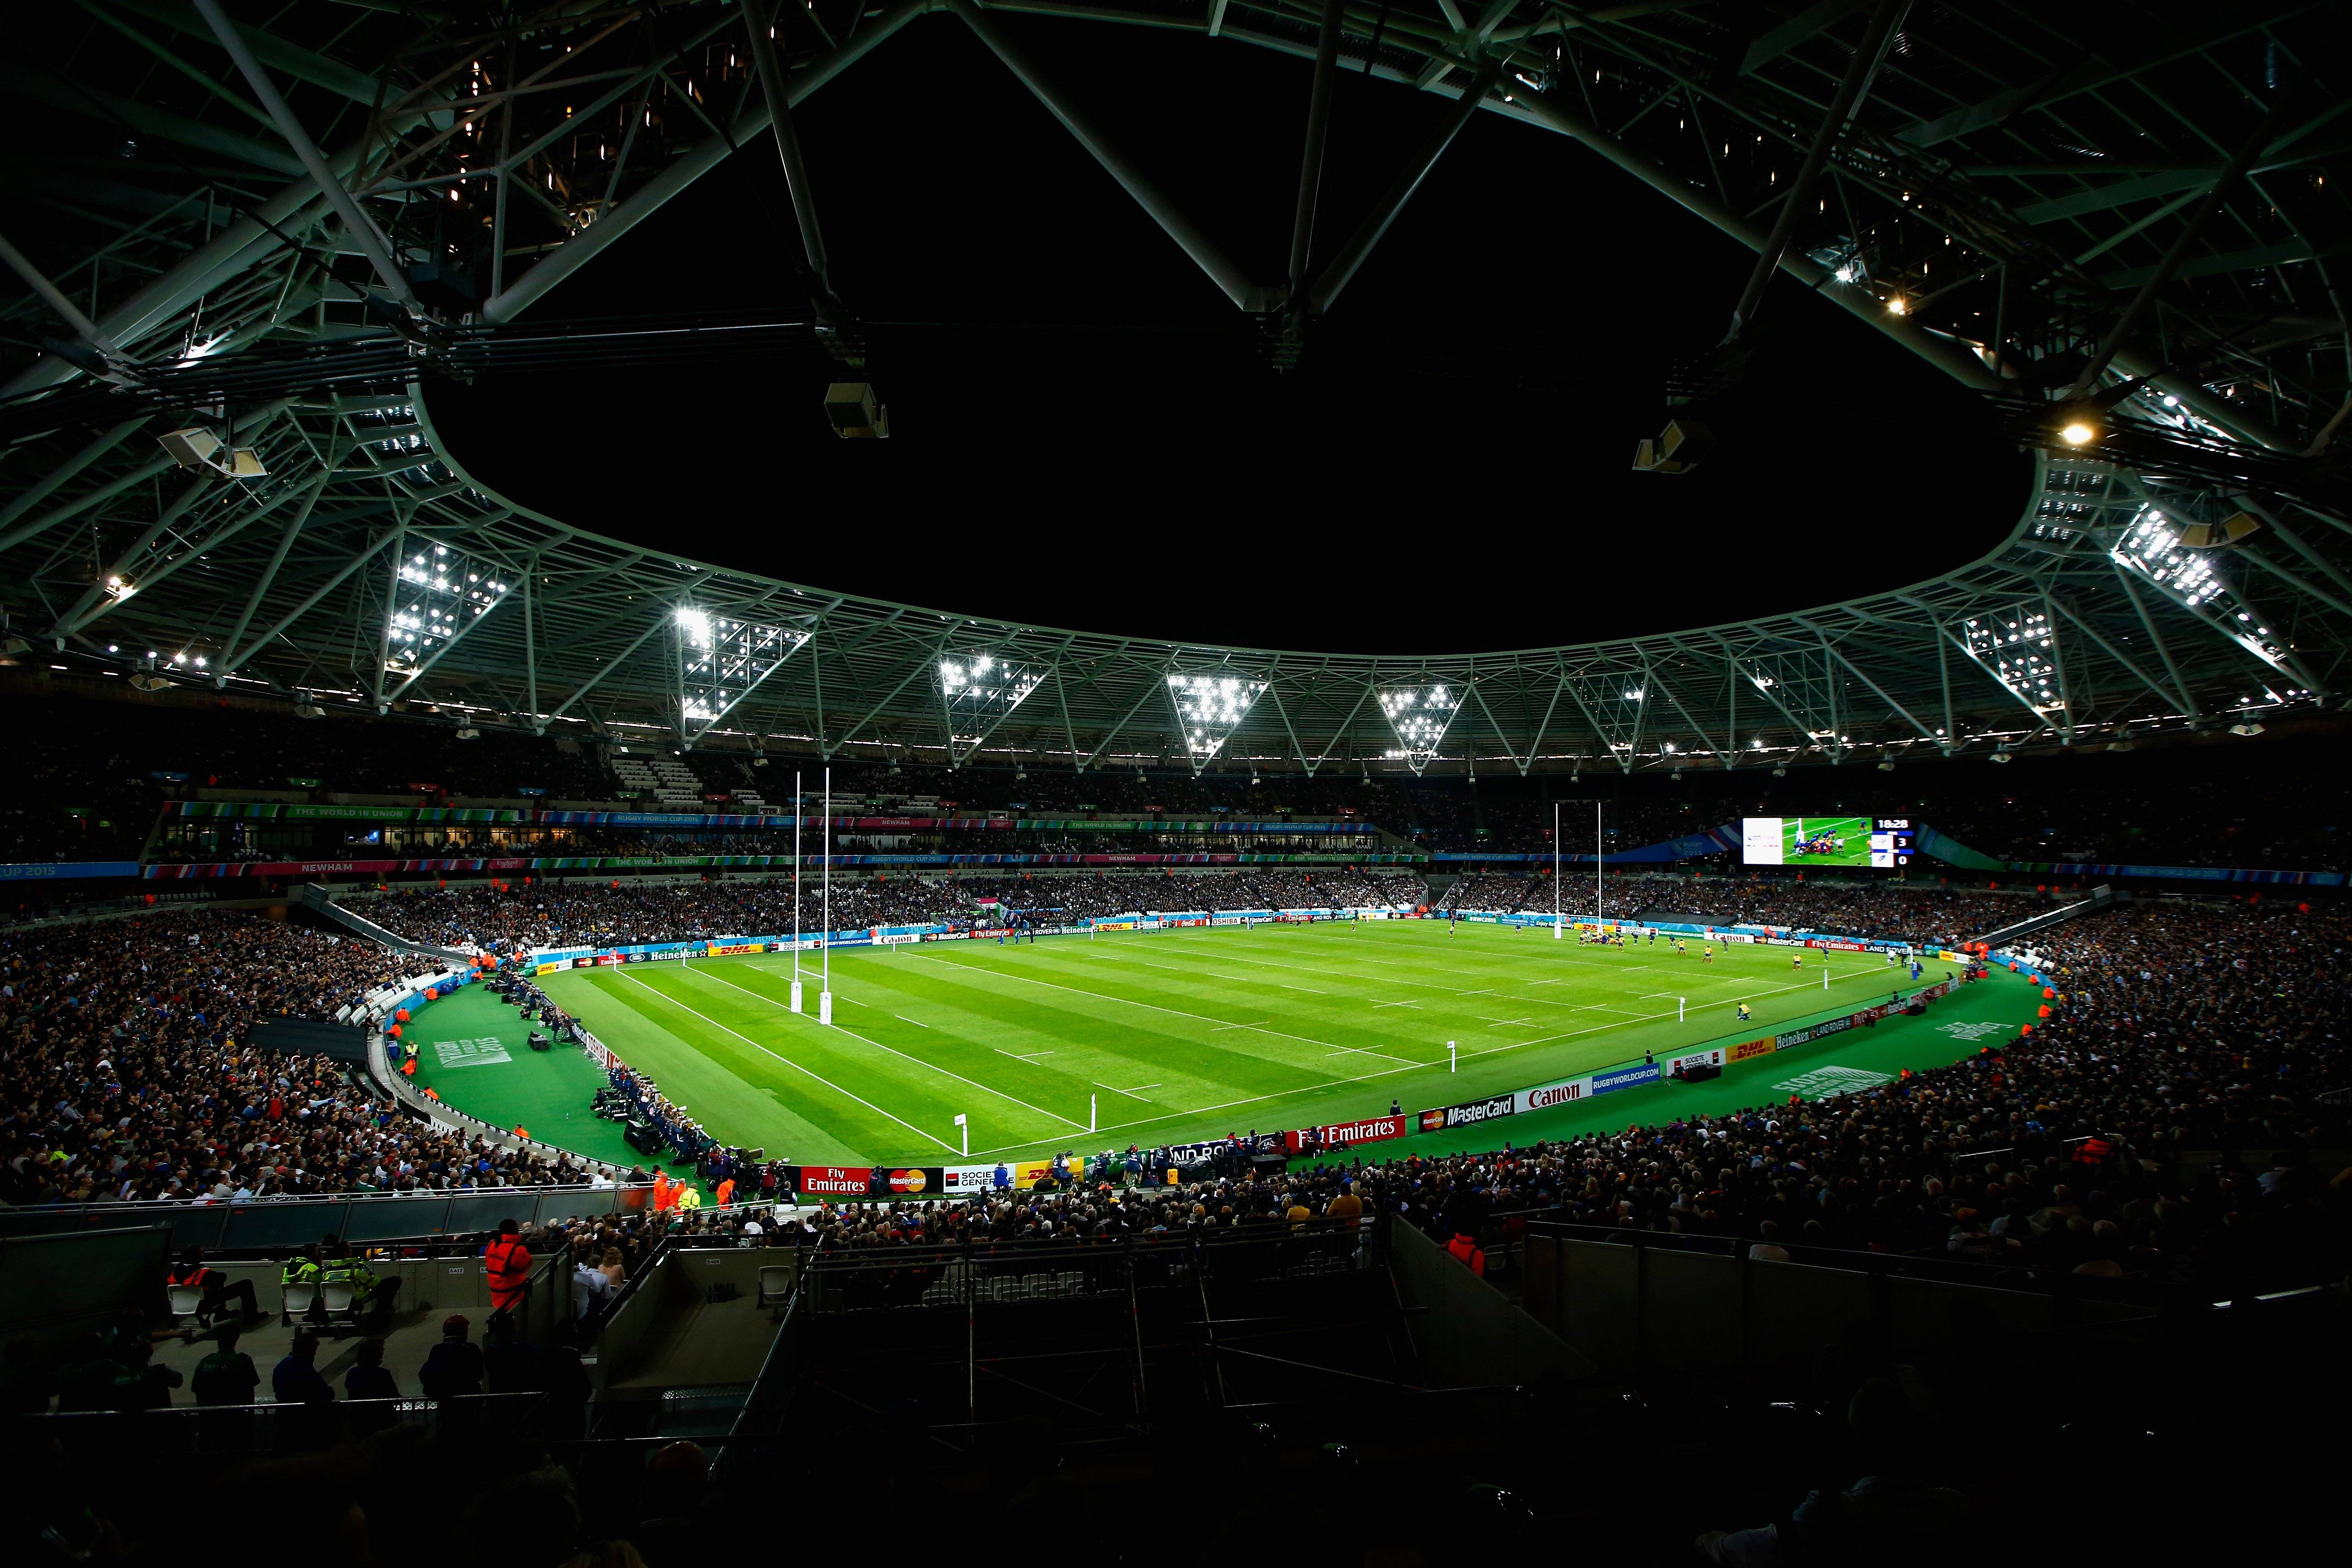 rugby-match- stadium-wide-angle-shot